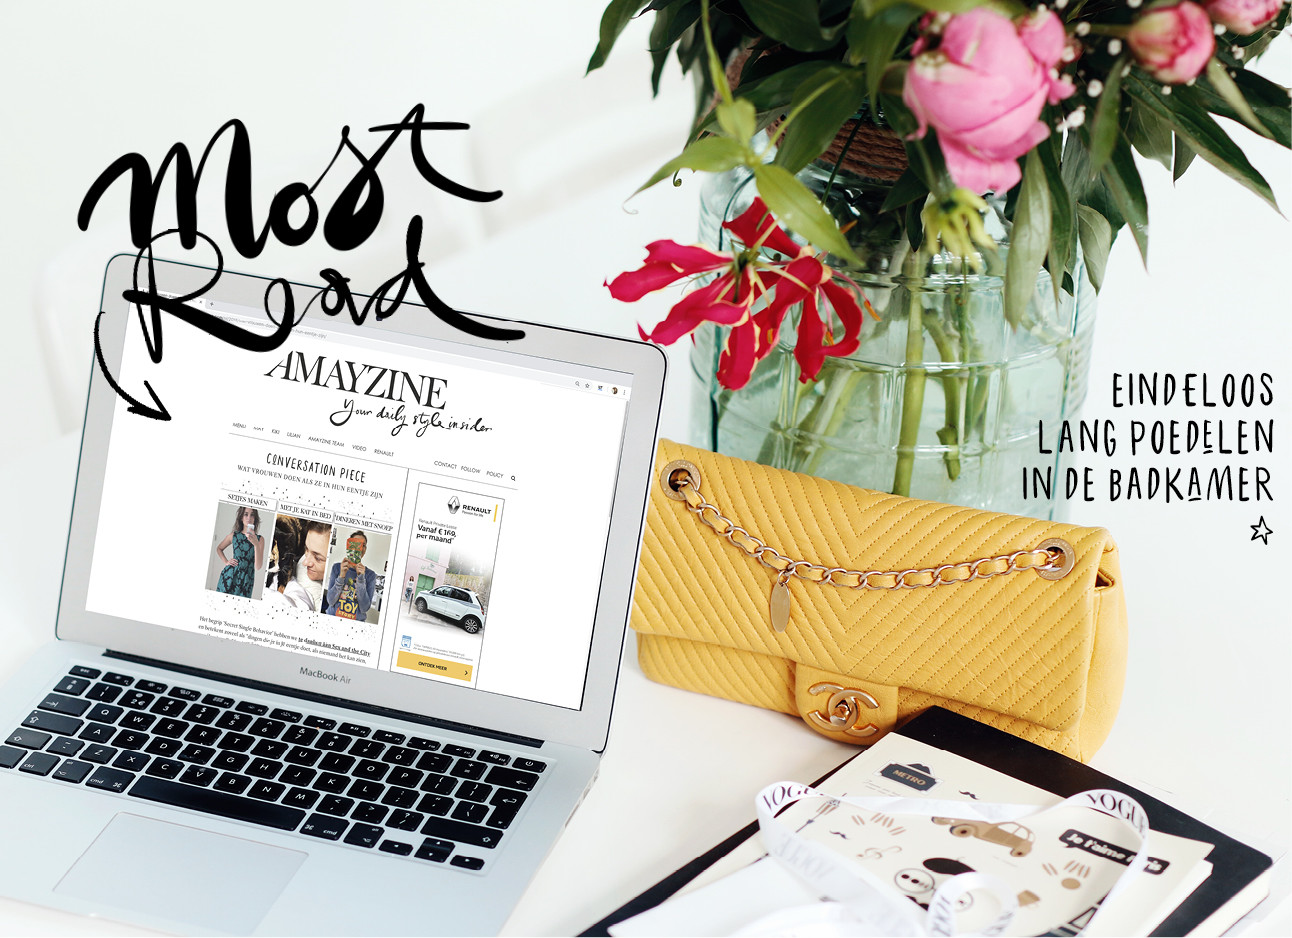 Most read laptop scherm mac en chanel tas